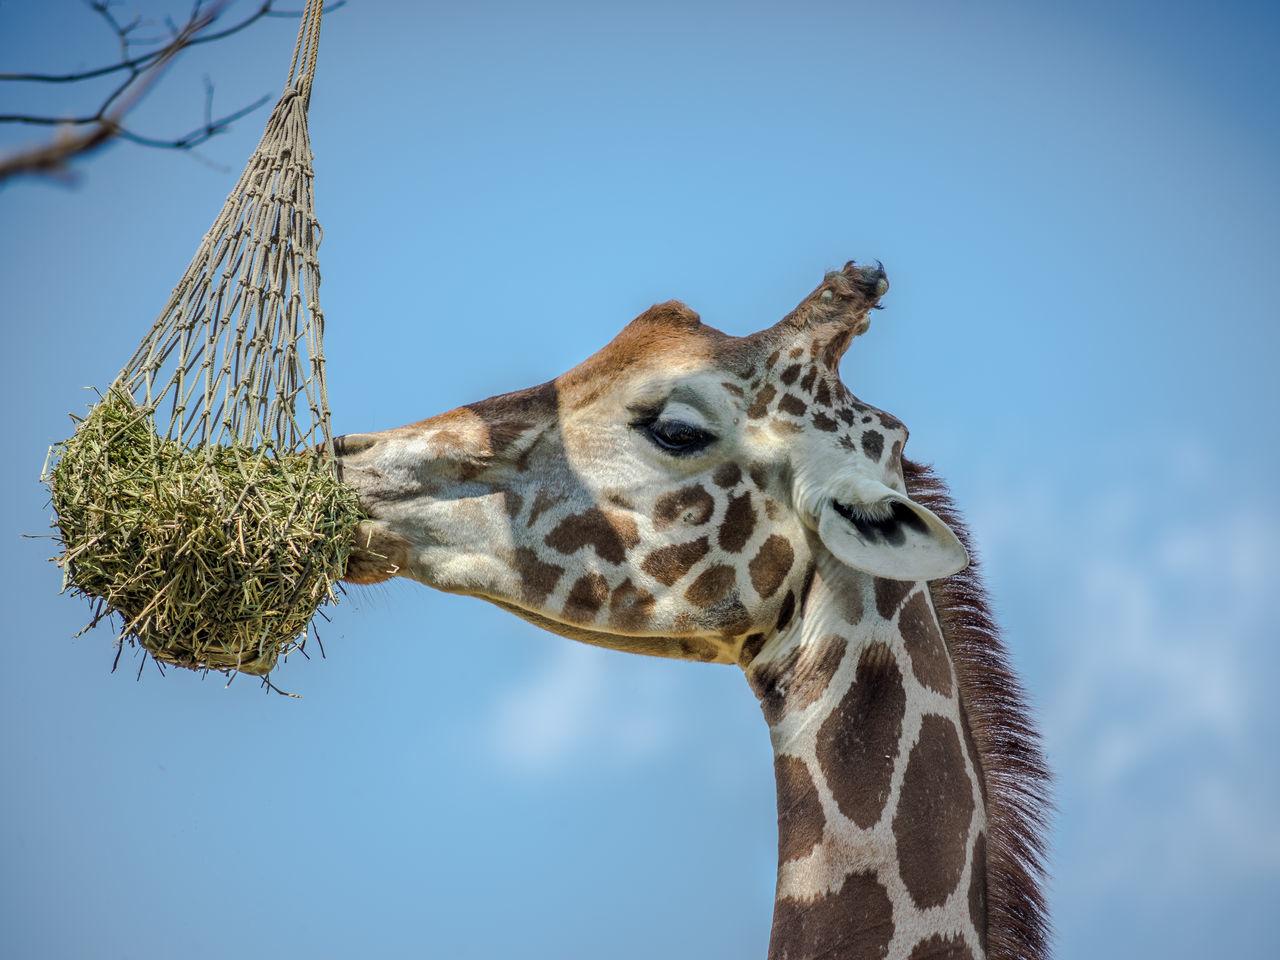 Low Angle View Of Giraffe Eating From Net At Zoo Against Sky